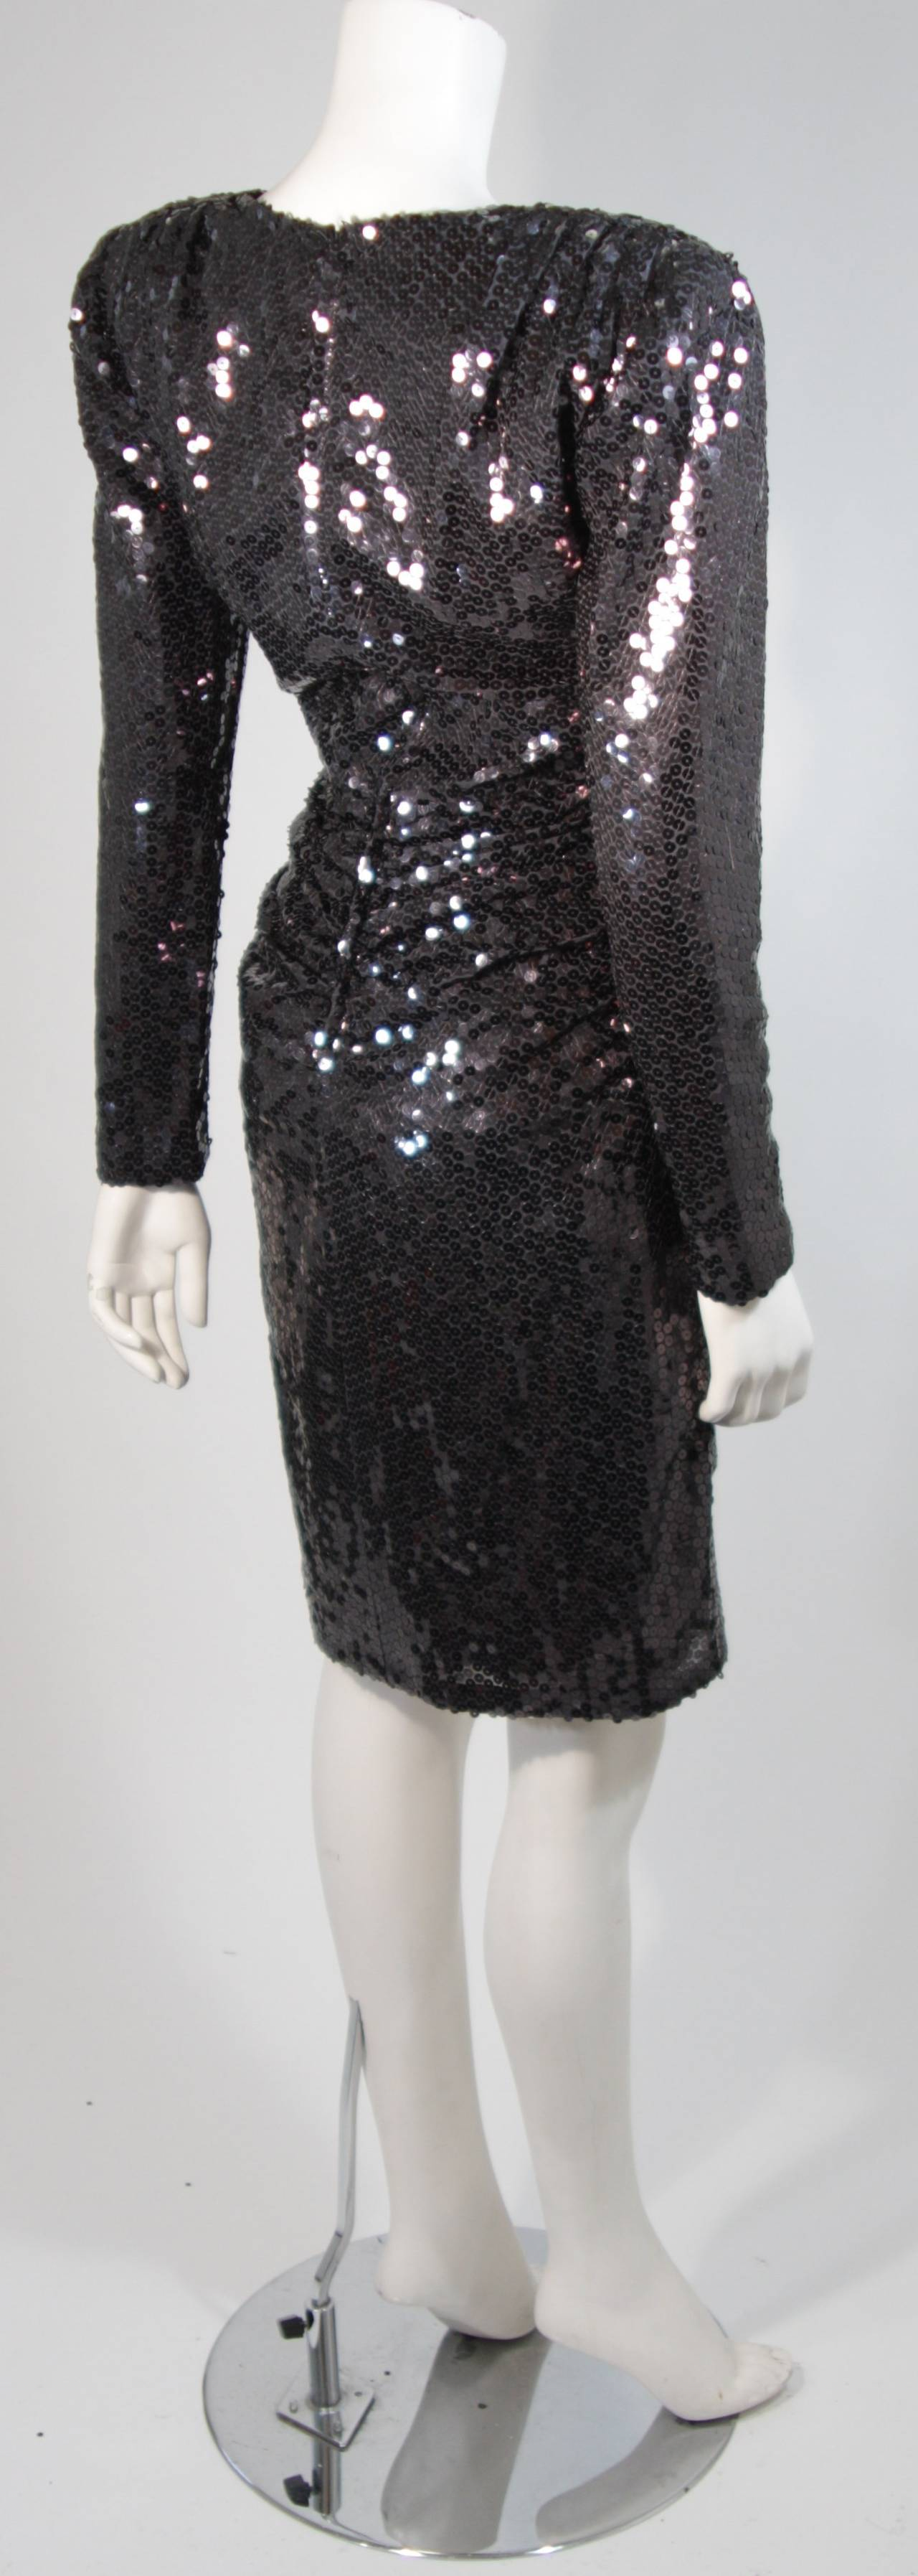 Vicky Tiel Black Iridescent Sequin Cocktail Dress Size 38 7